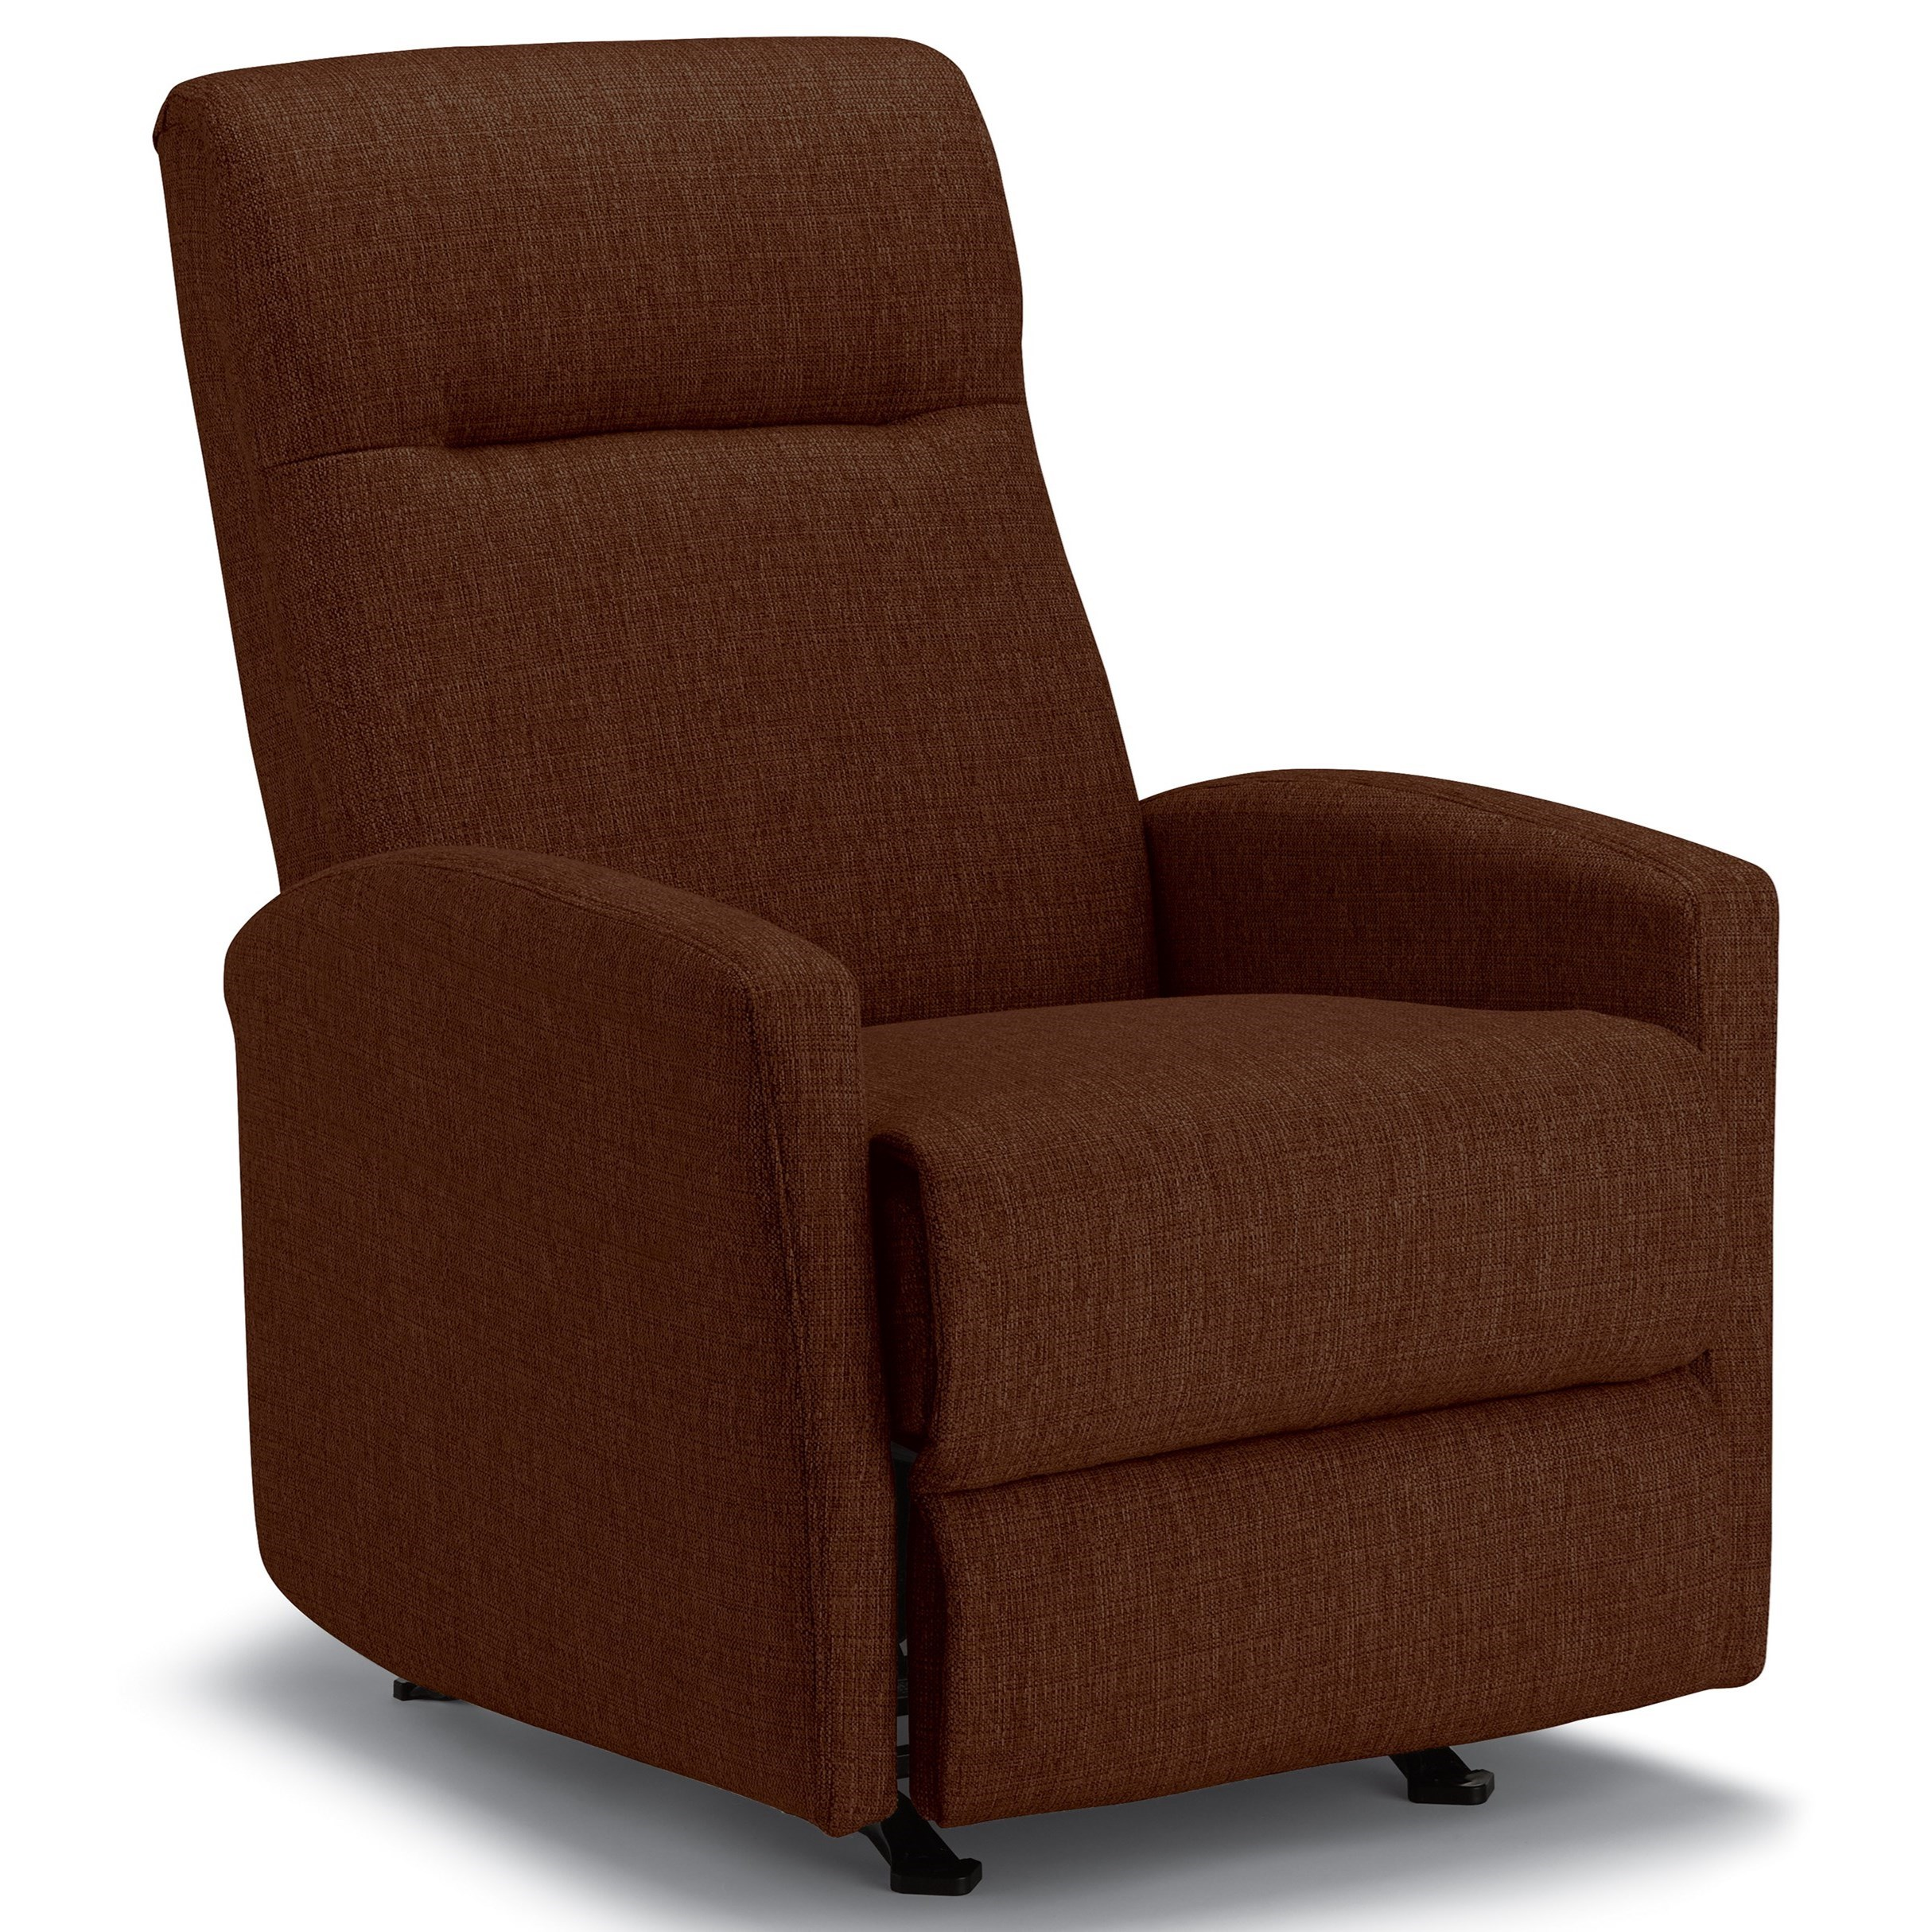 Best Xpress - Arnold Rocker Recliner w/ Inside Handle by Best Home Furnishings at Best Home Furnishings